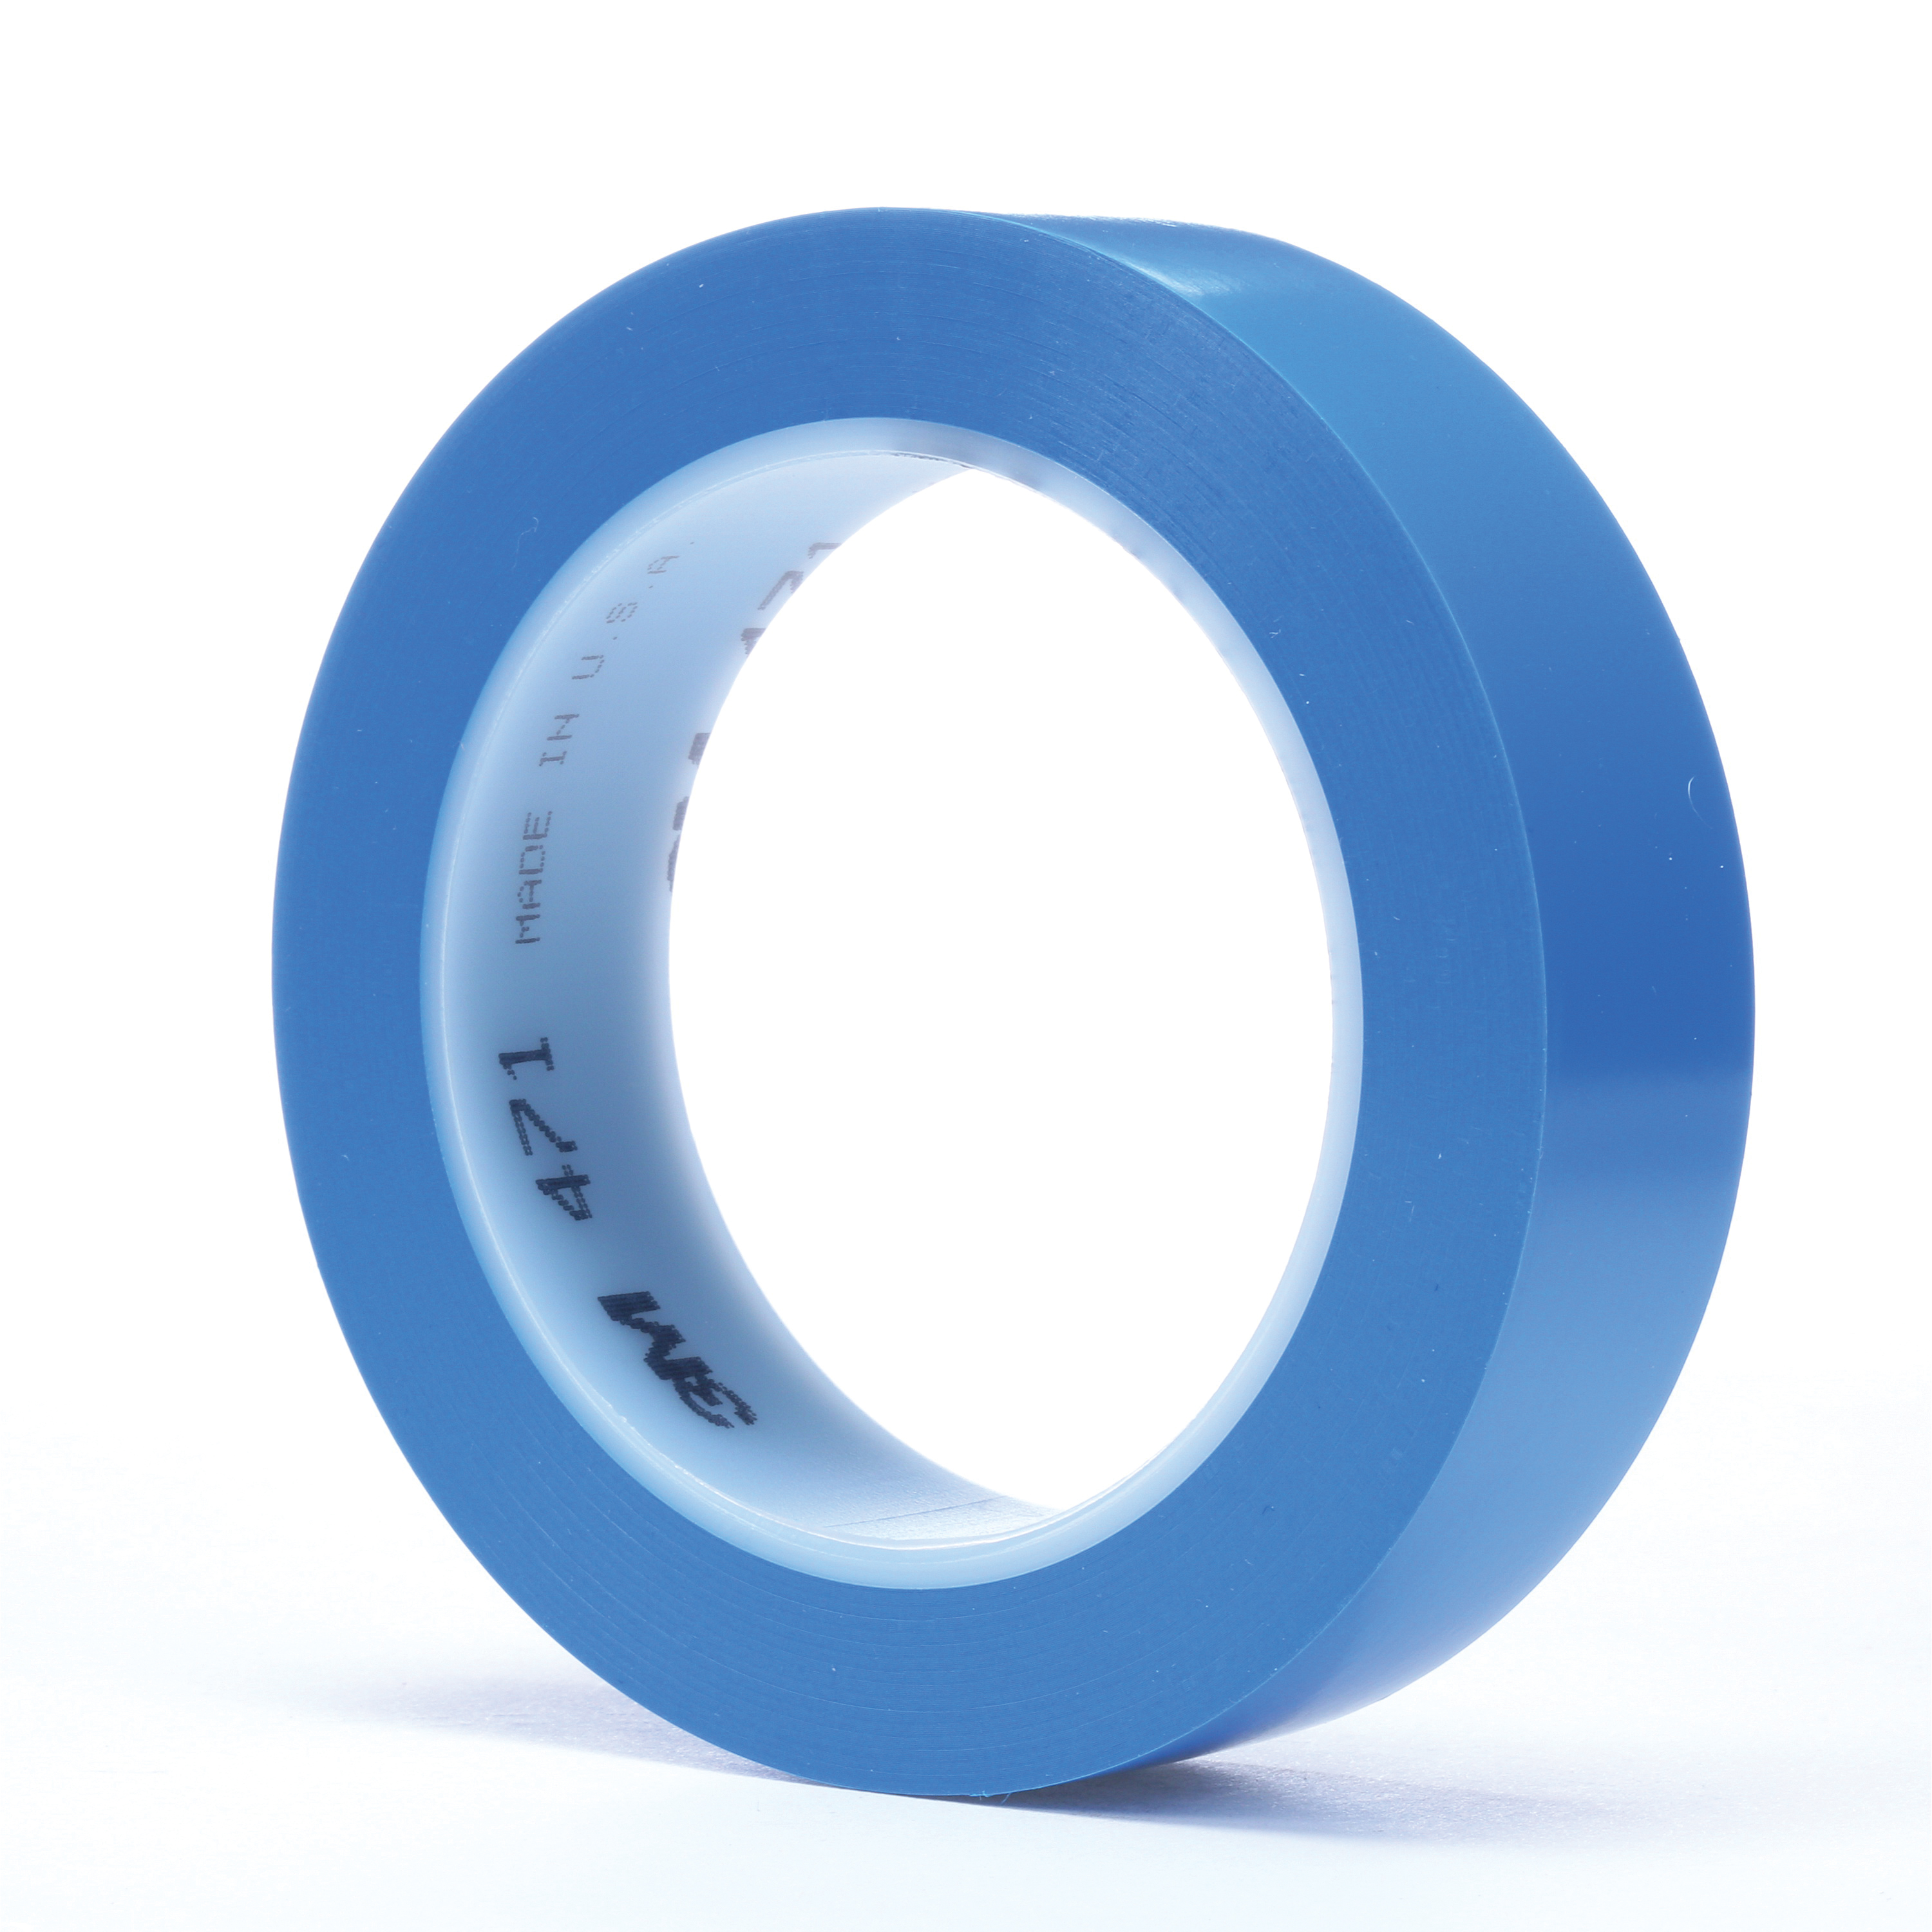 3M™ 021200-03121 High Performance Vinyl Tape, 36 yd L x 1 in W, 5.2 mil THK, Rubber Adhesive, Vinyl Backing, Blue